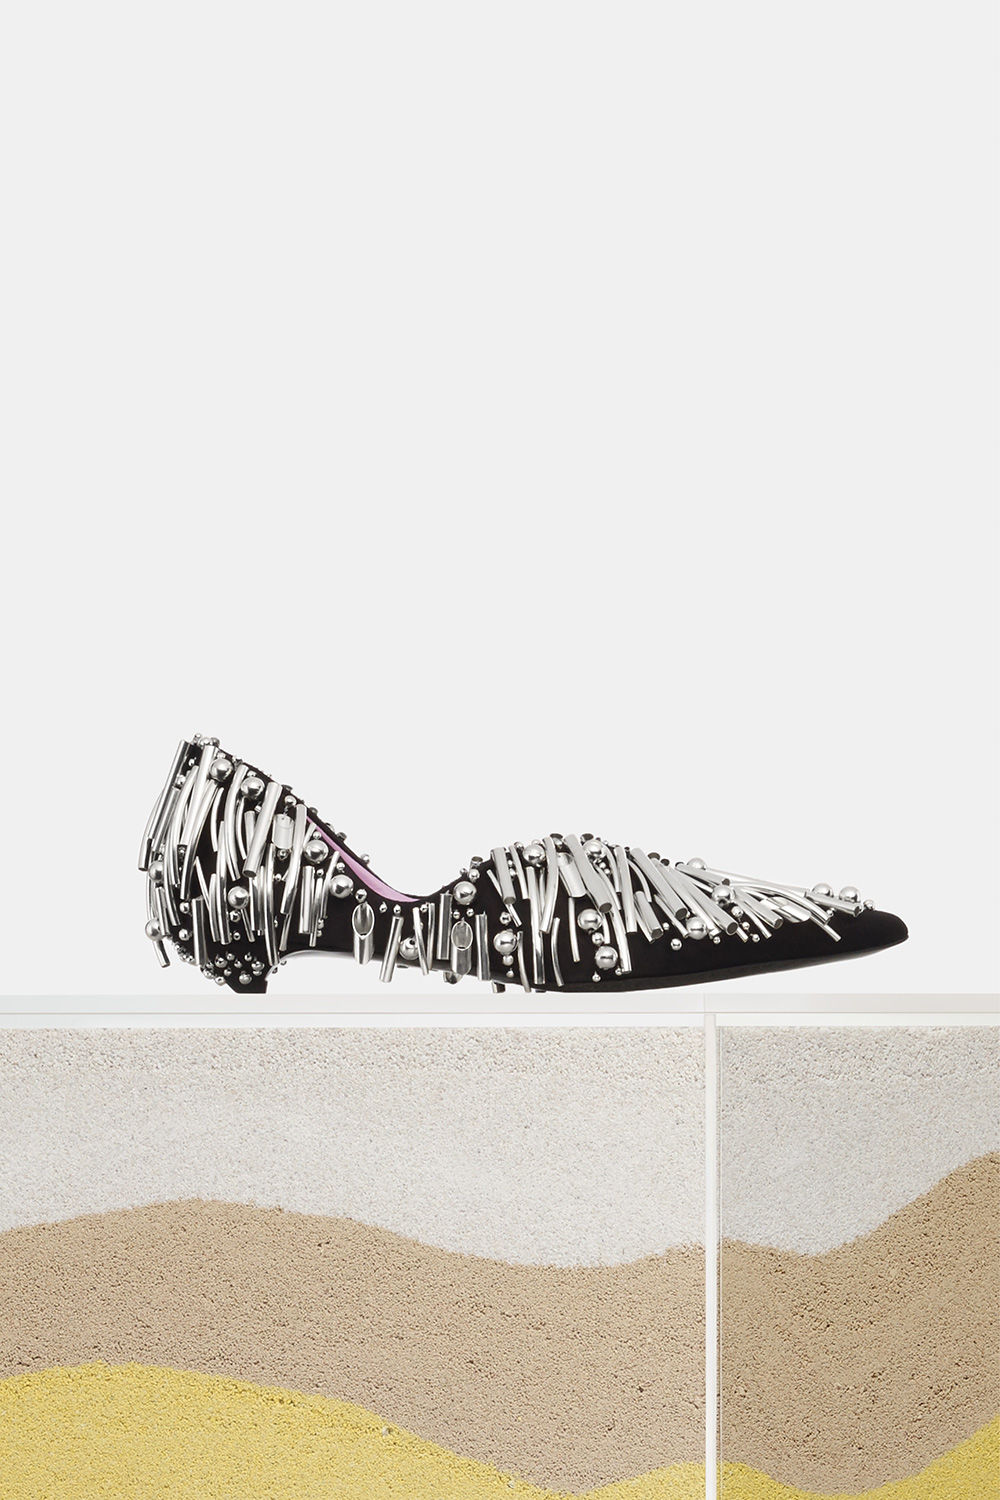 proenza schouler spring 2018 black and silver embroidered low heel